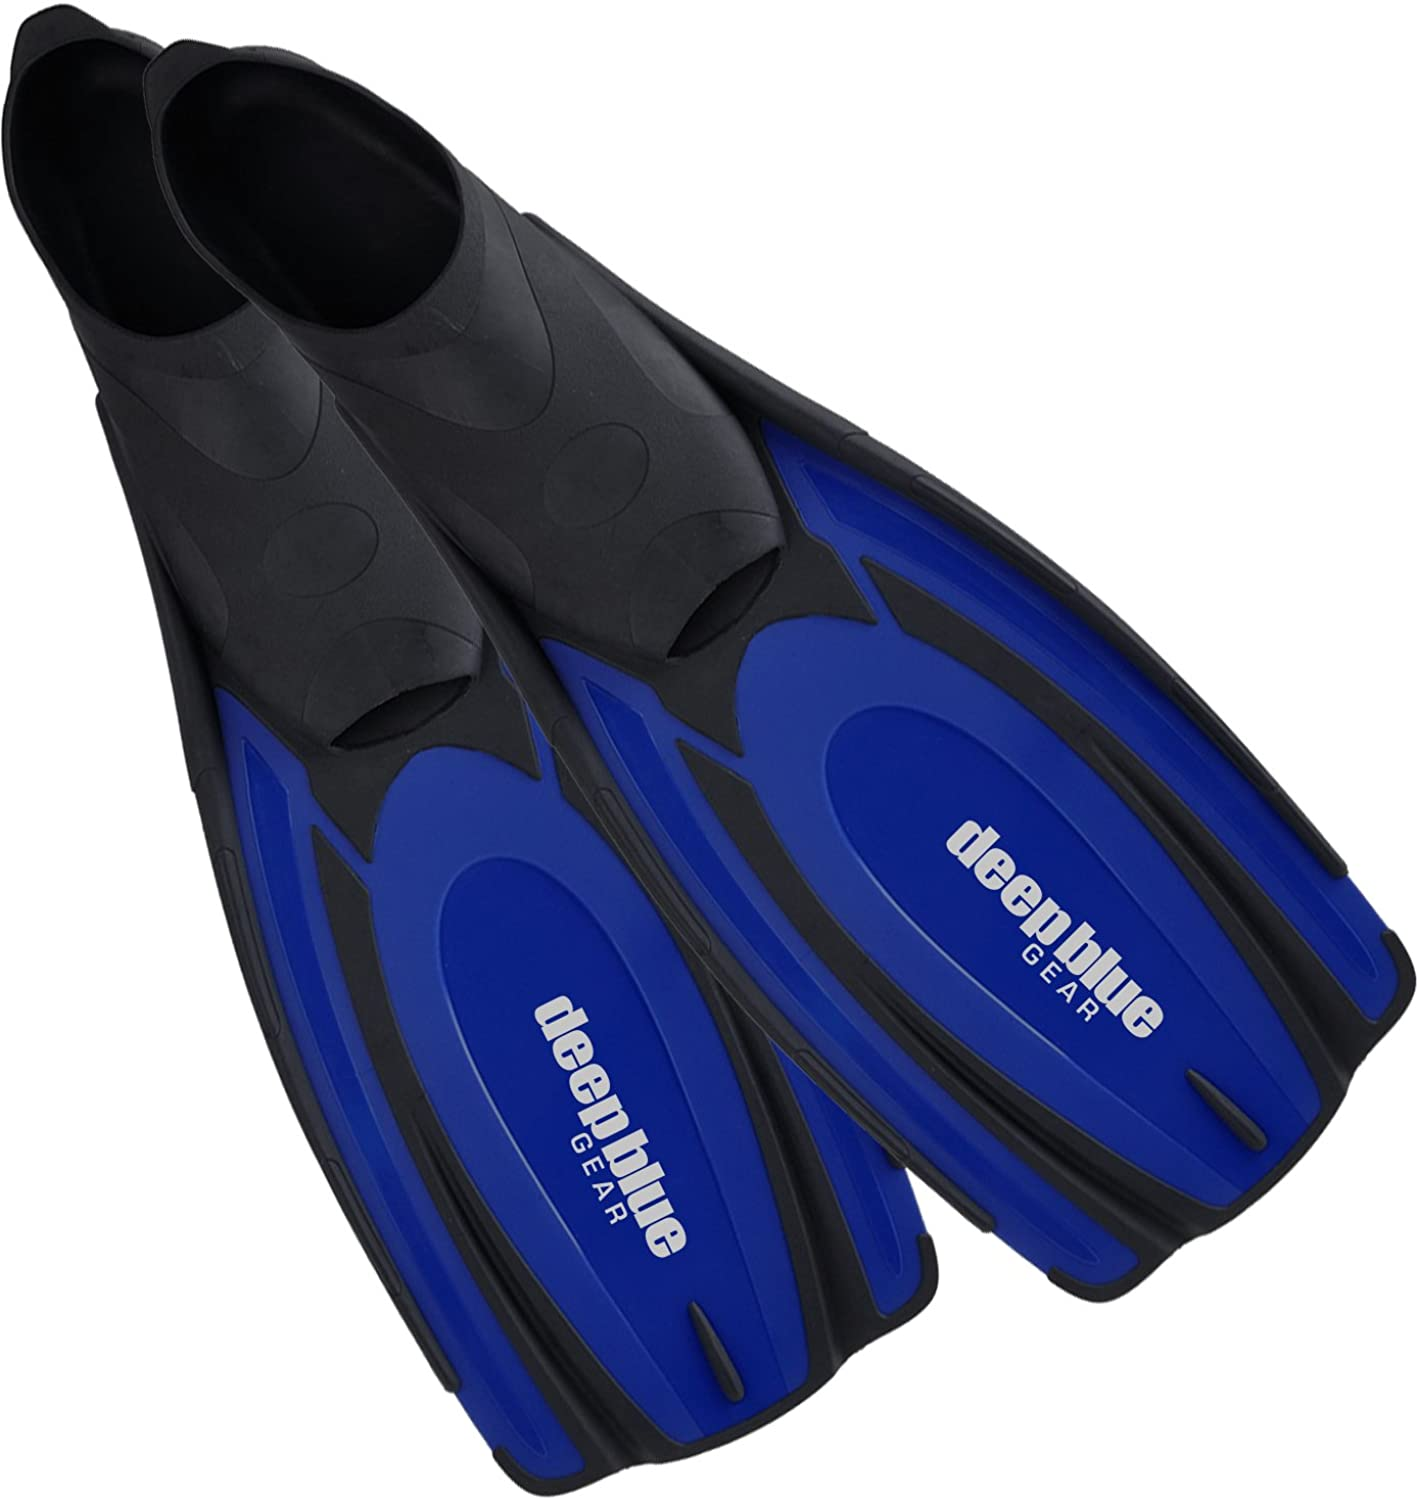 Deep blueee Gear Latitude 2 Fins for Diving, Snorkeling, and Swim